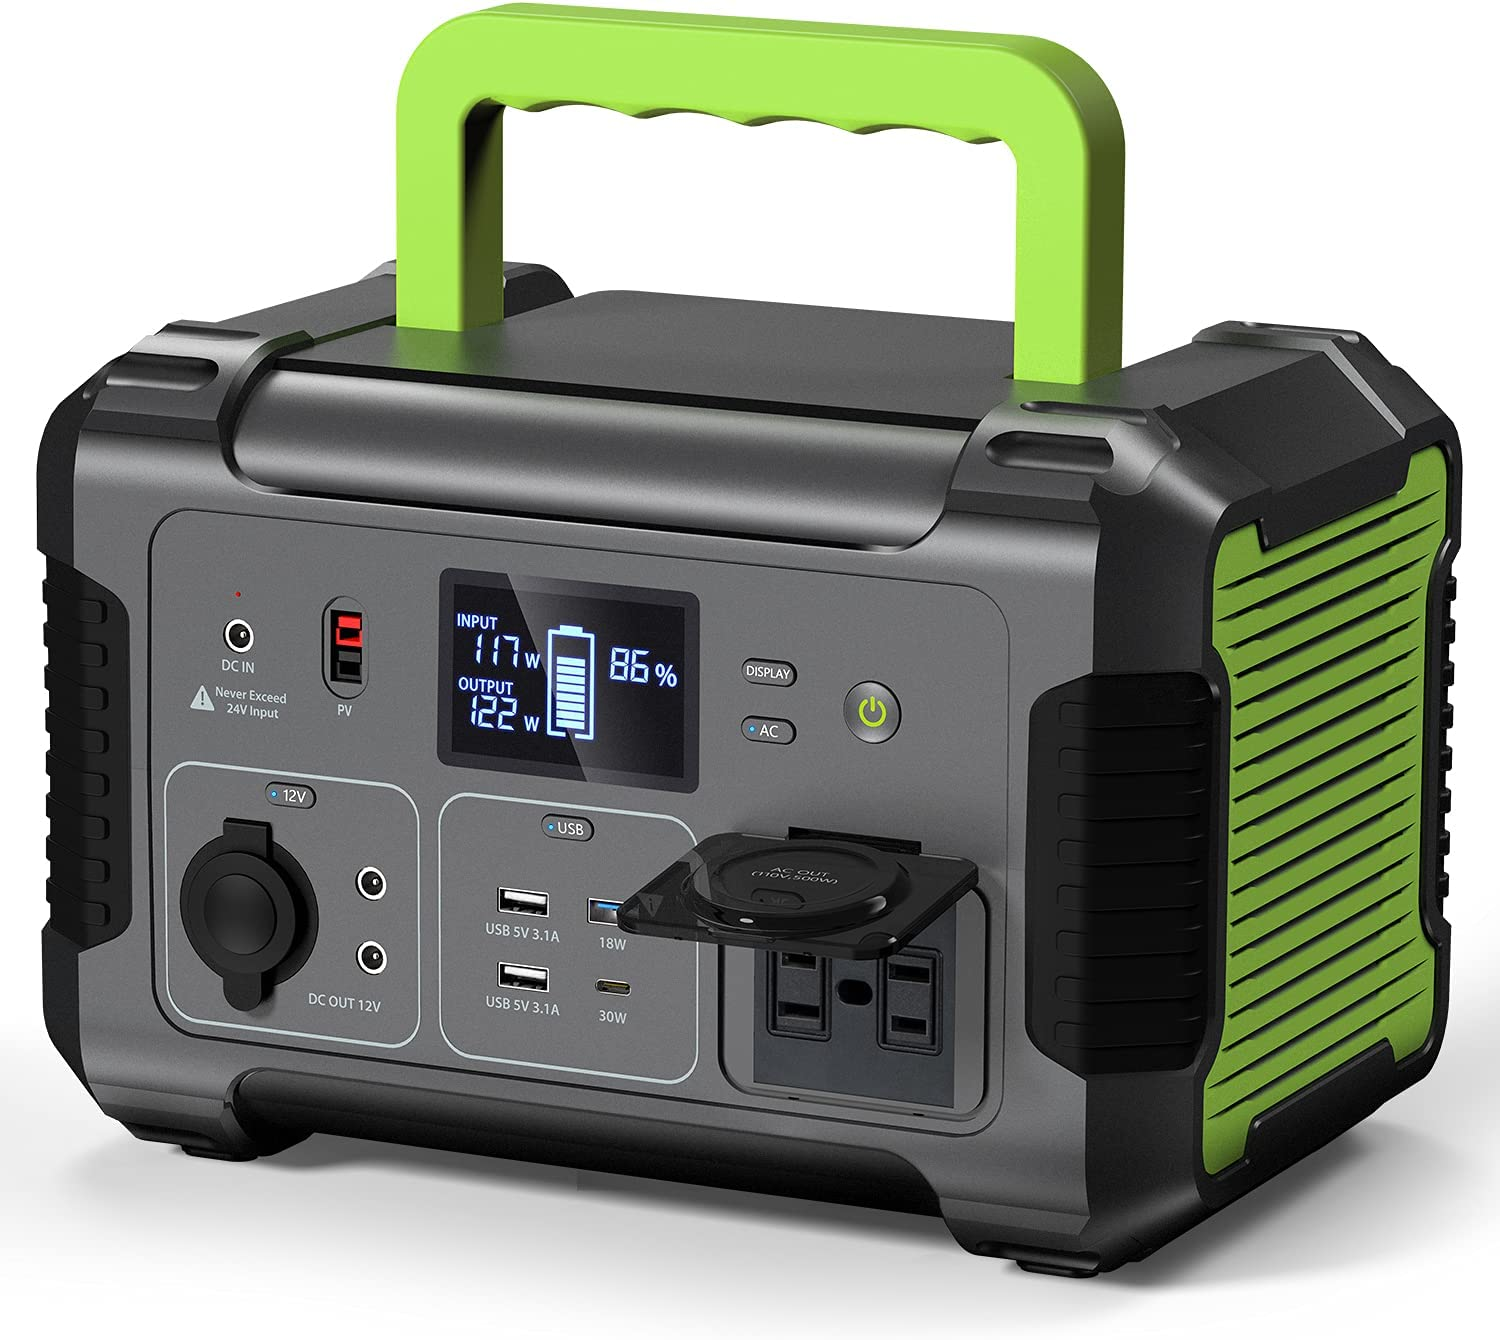 PAXCESS Portable Power Max 78% OFF Station 500W 519Wh 140400mAh Solar Gener New Free Shipping